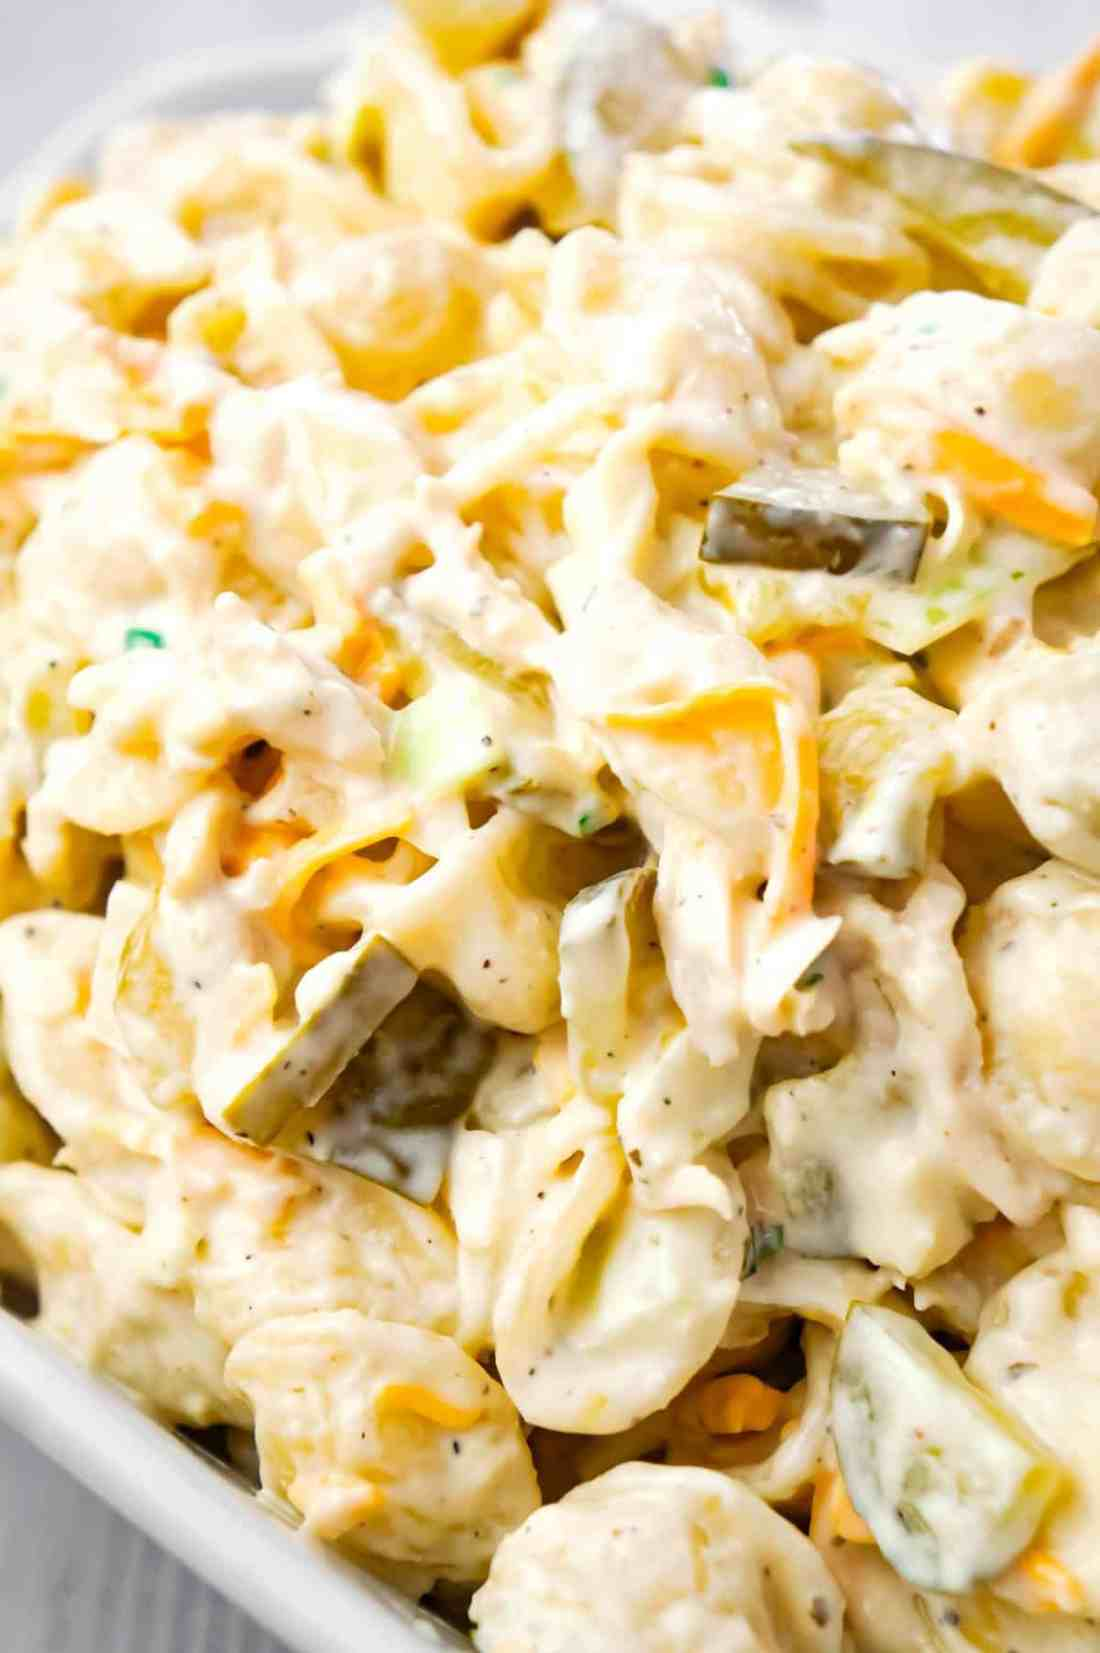 Dill Pickle Chicken Pasta Salad is a delicious cold side dish recipe loaded with shredded chicken, diced dill pickles, mayo, ranch dressing and shredded cheese.